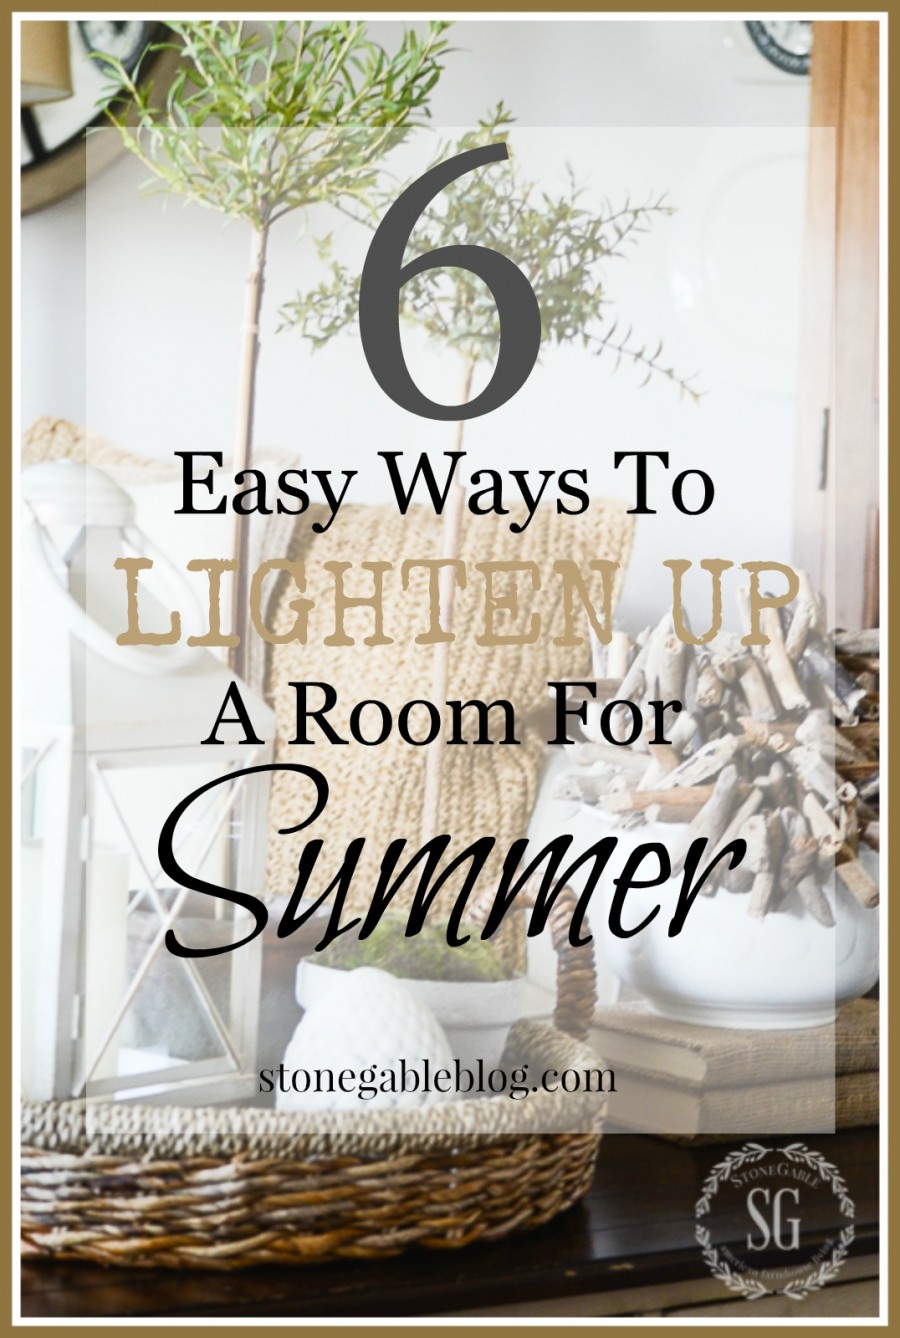 6 WAYS TO LIGHTEN UP YOUR DECOR FOR SUMMER- 6 easy ways to add summer to you home decor!